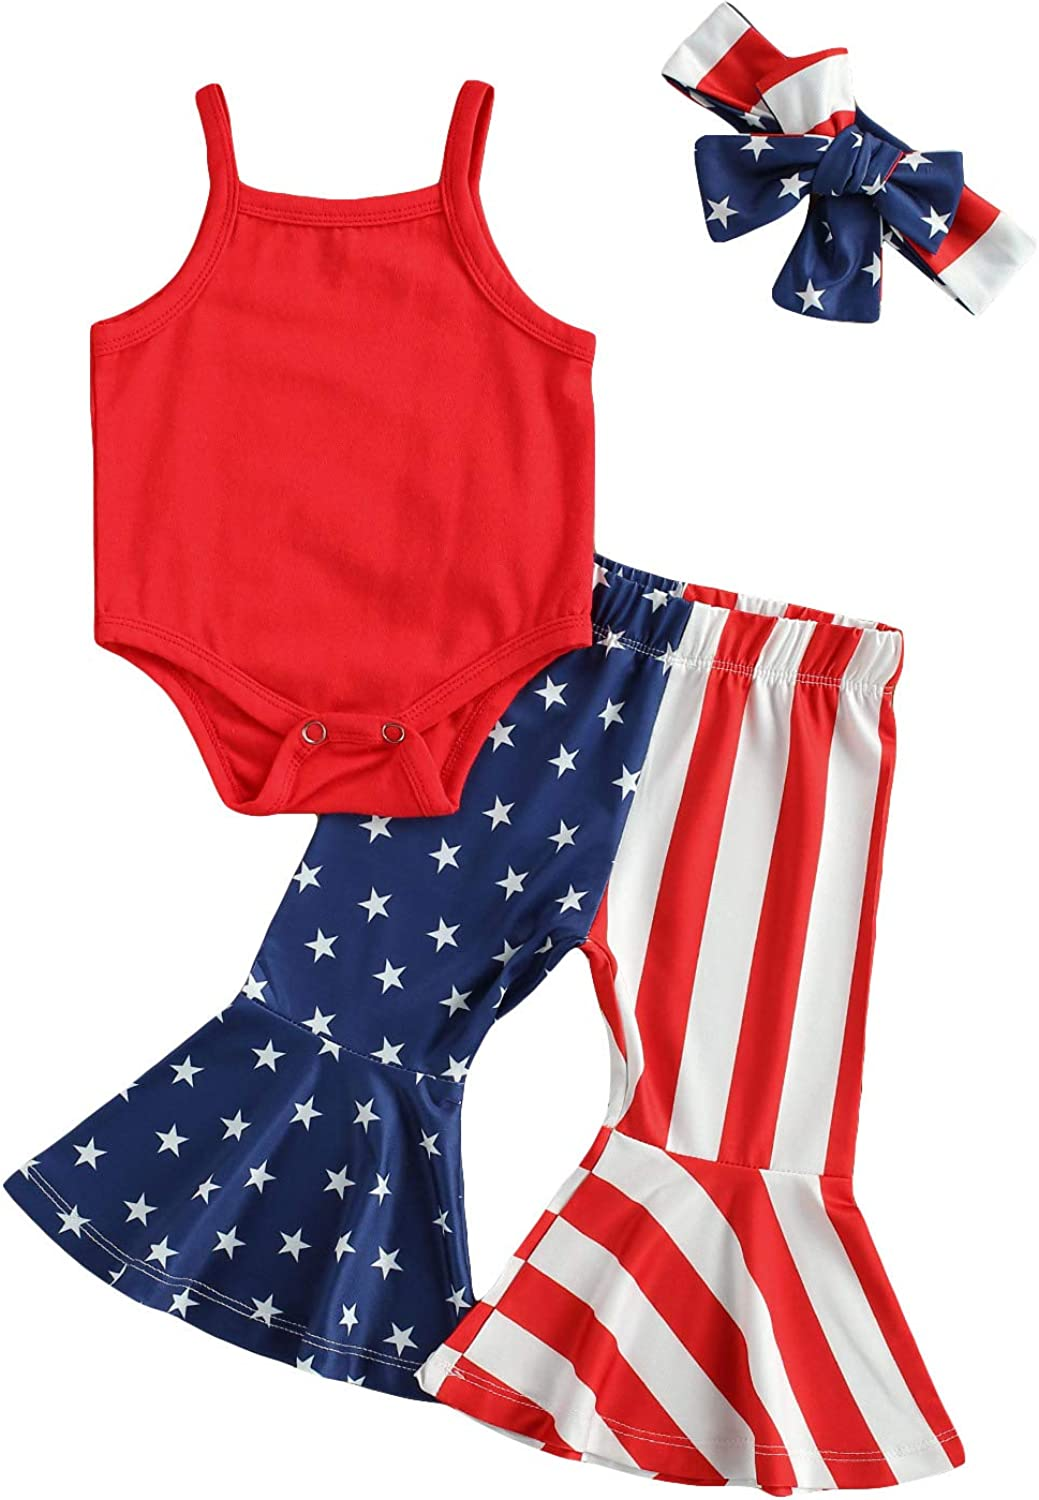 Infant Baby Girl 1st 4th of July Outfit Halter Romper Shirt Tops Flare Pants Set 2Pcs Independence Day American Flag Clothes